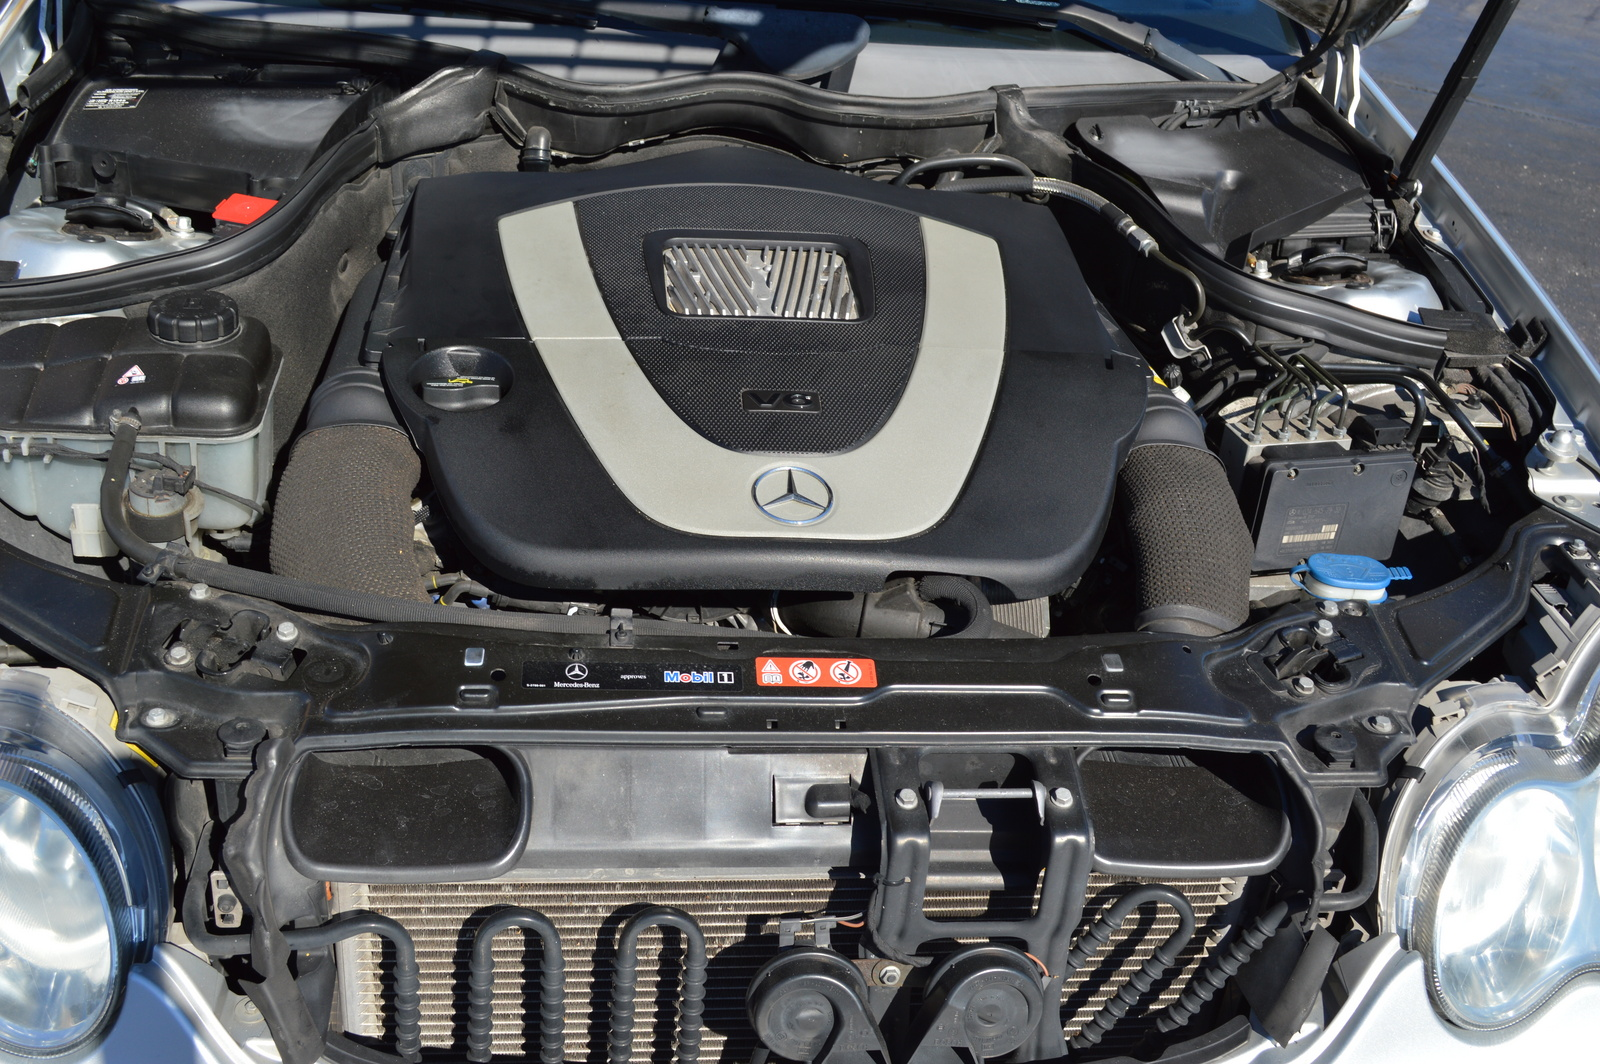 2007 mercedes benz c class pictures cargurus for Mercedes benz c230 engine